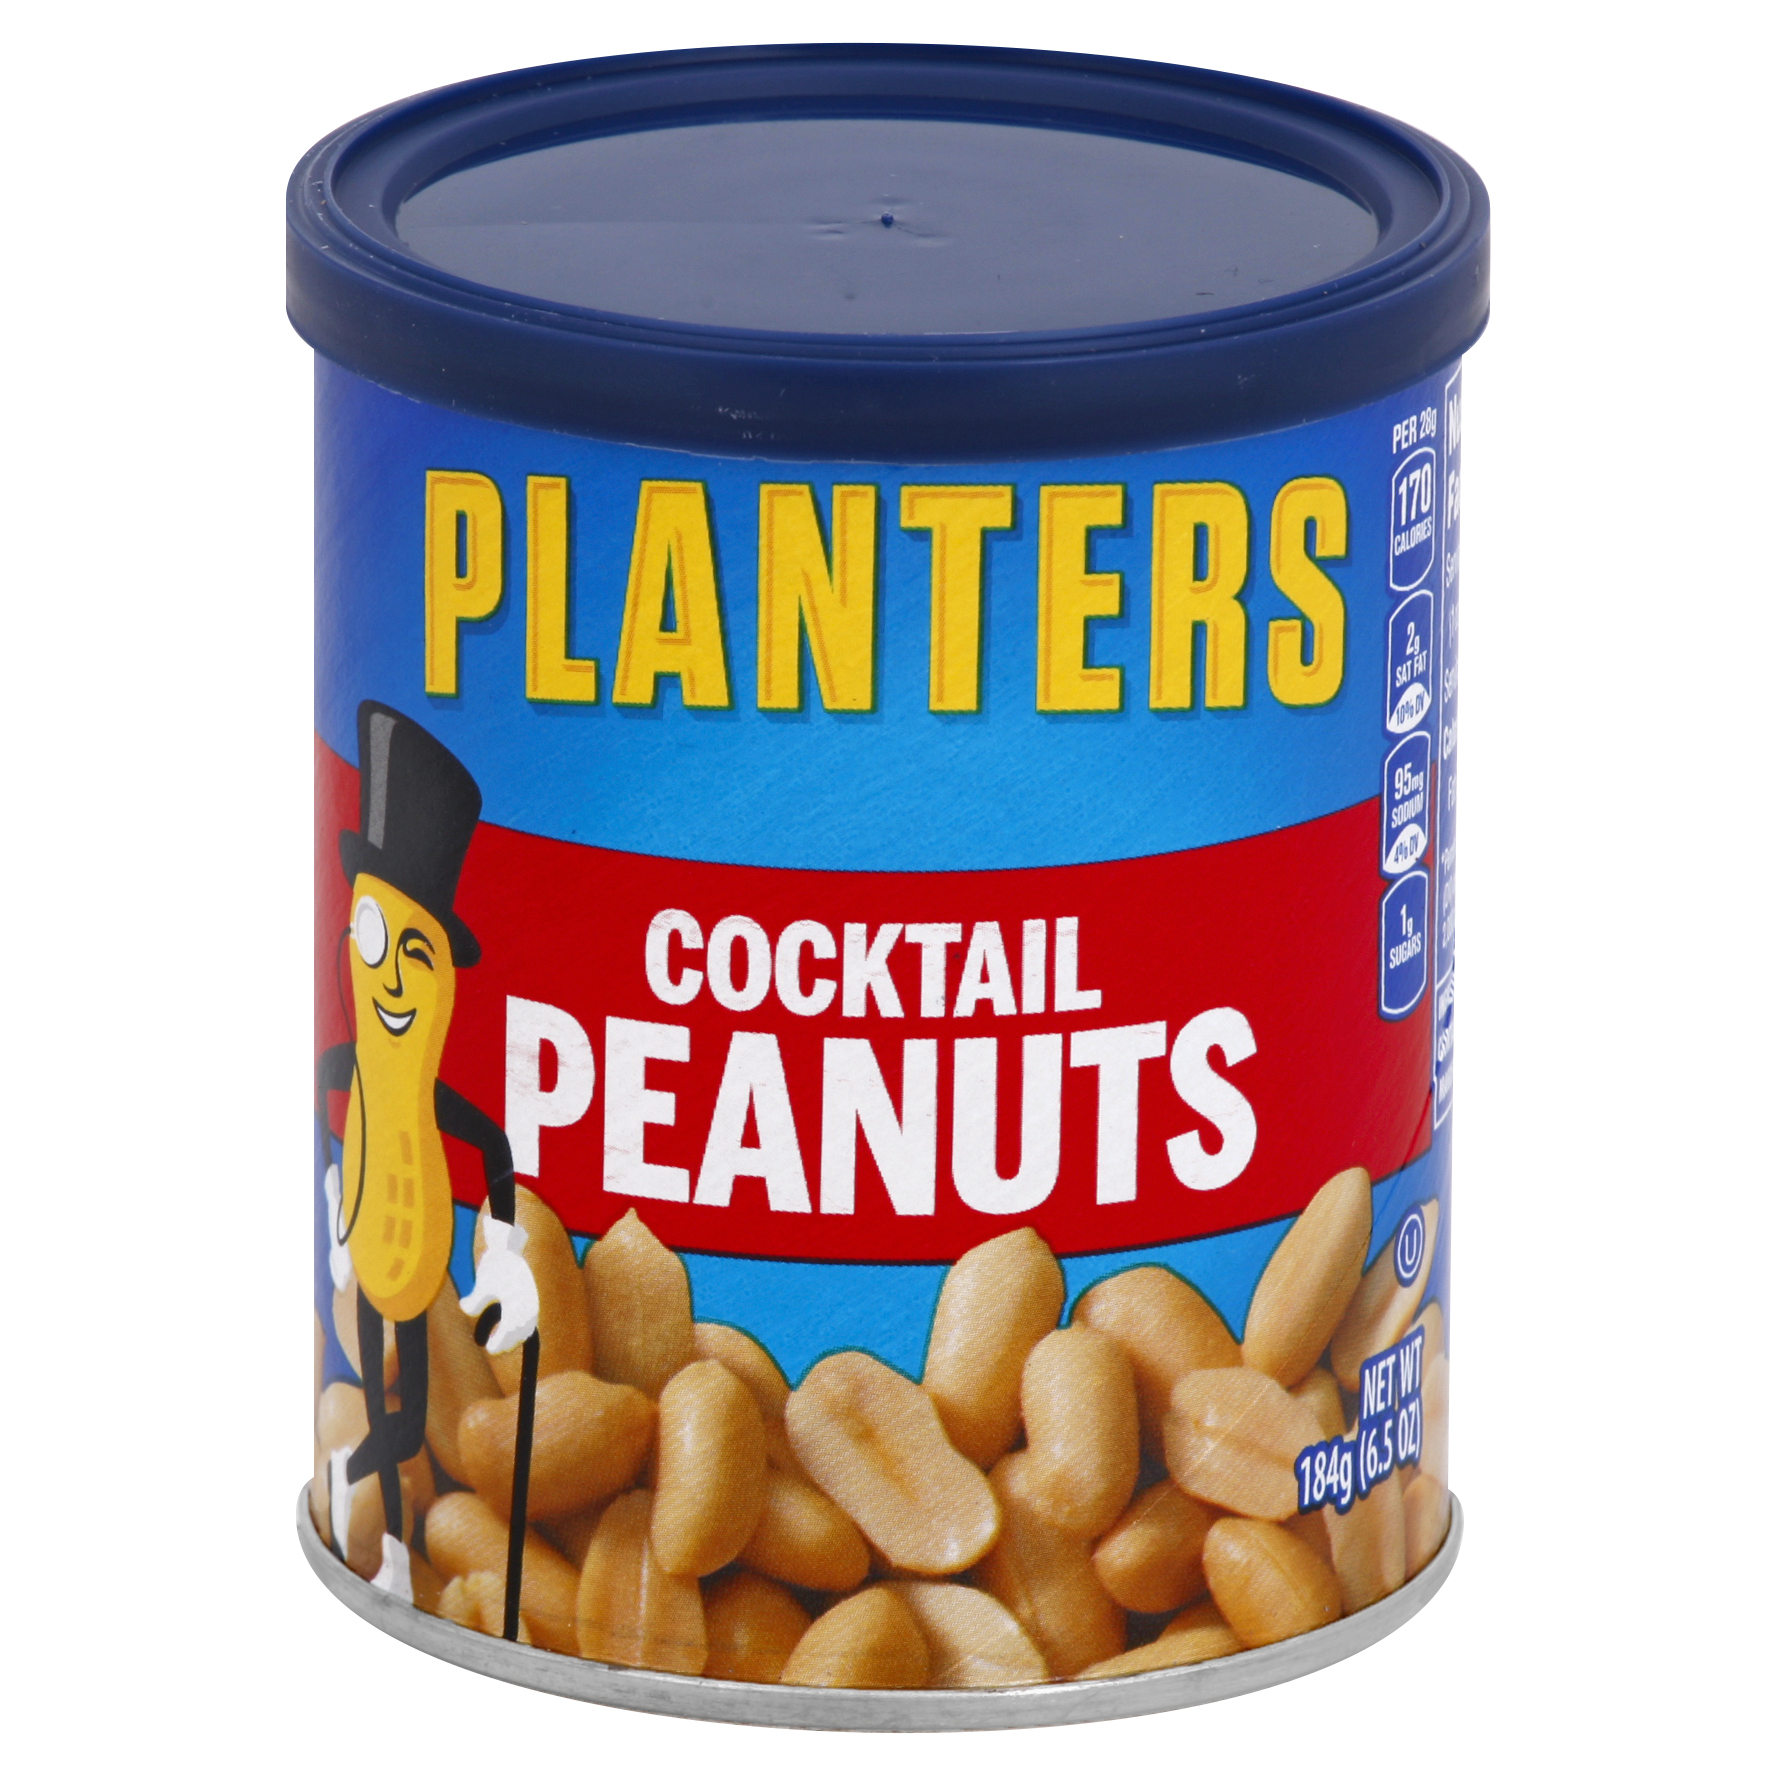 Product View on planters munch bar, planters holiday 3-pack, planters almond chocolate crunch, planters tailgate mix, planters pumpkin spice almonds, planters holiday mix, planters almonds seasonal winter, planters nuts gift pack, planters winter spiced nuts, planters pumpkin spiced almonds 22 5-ounce, planters spiced mix, planters nuts creme,